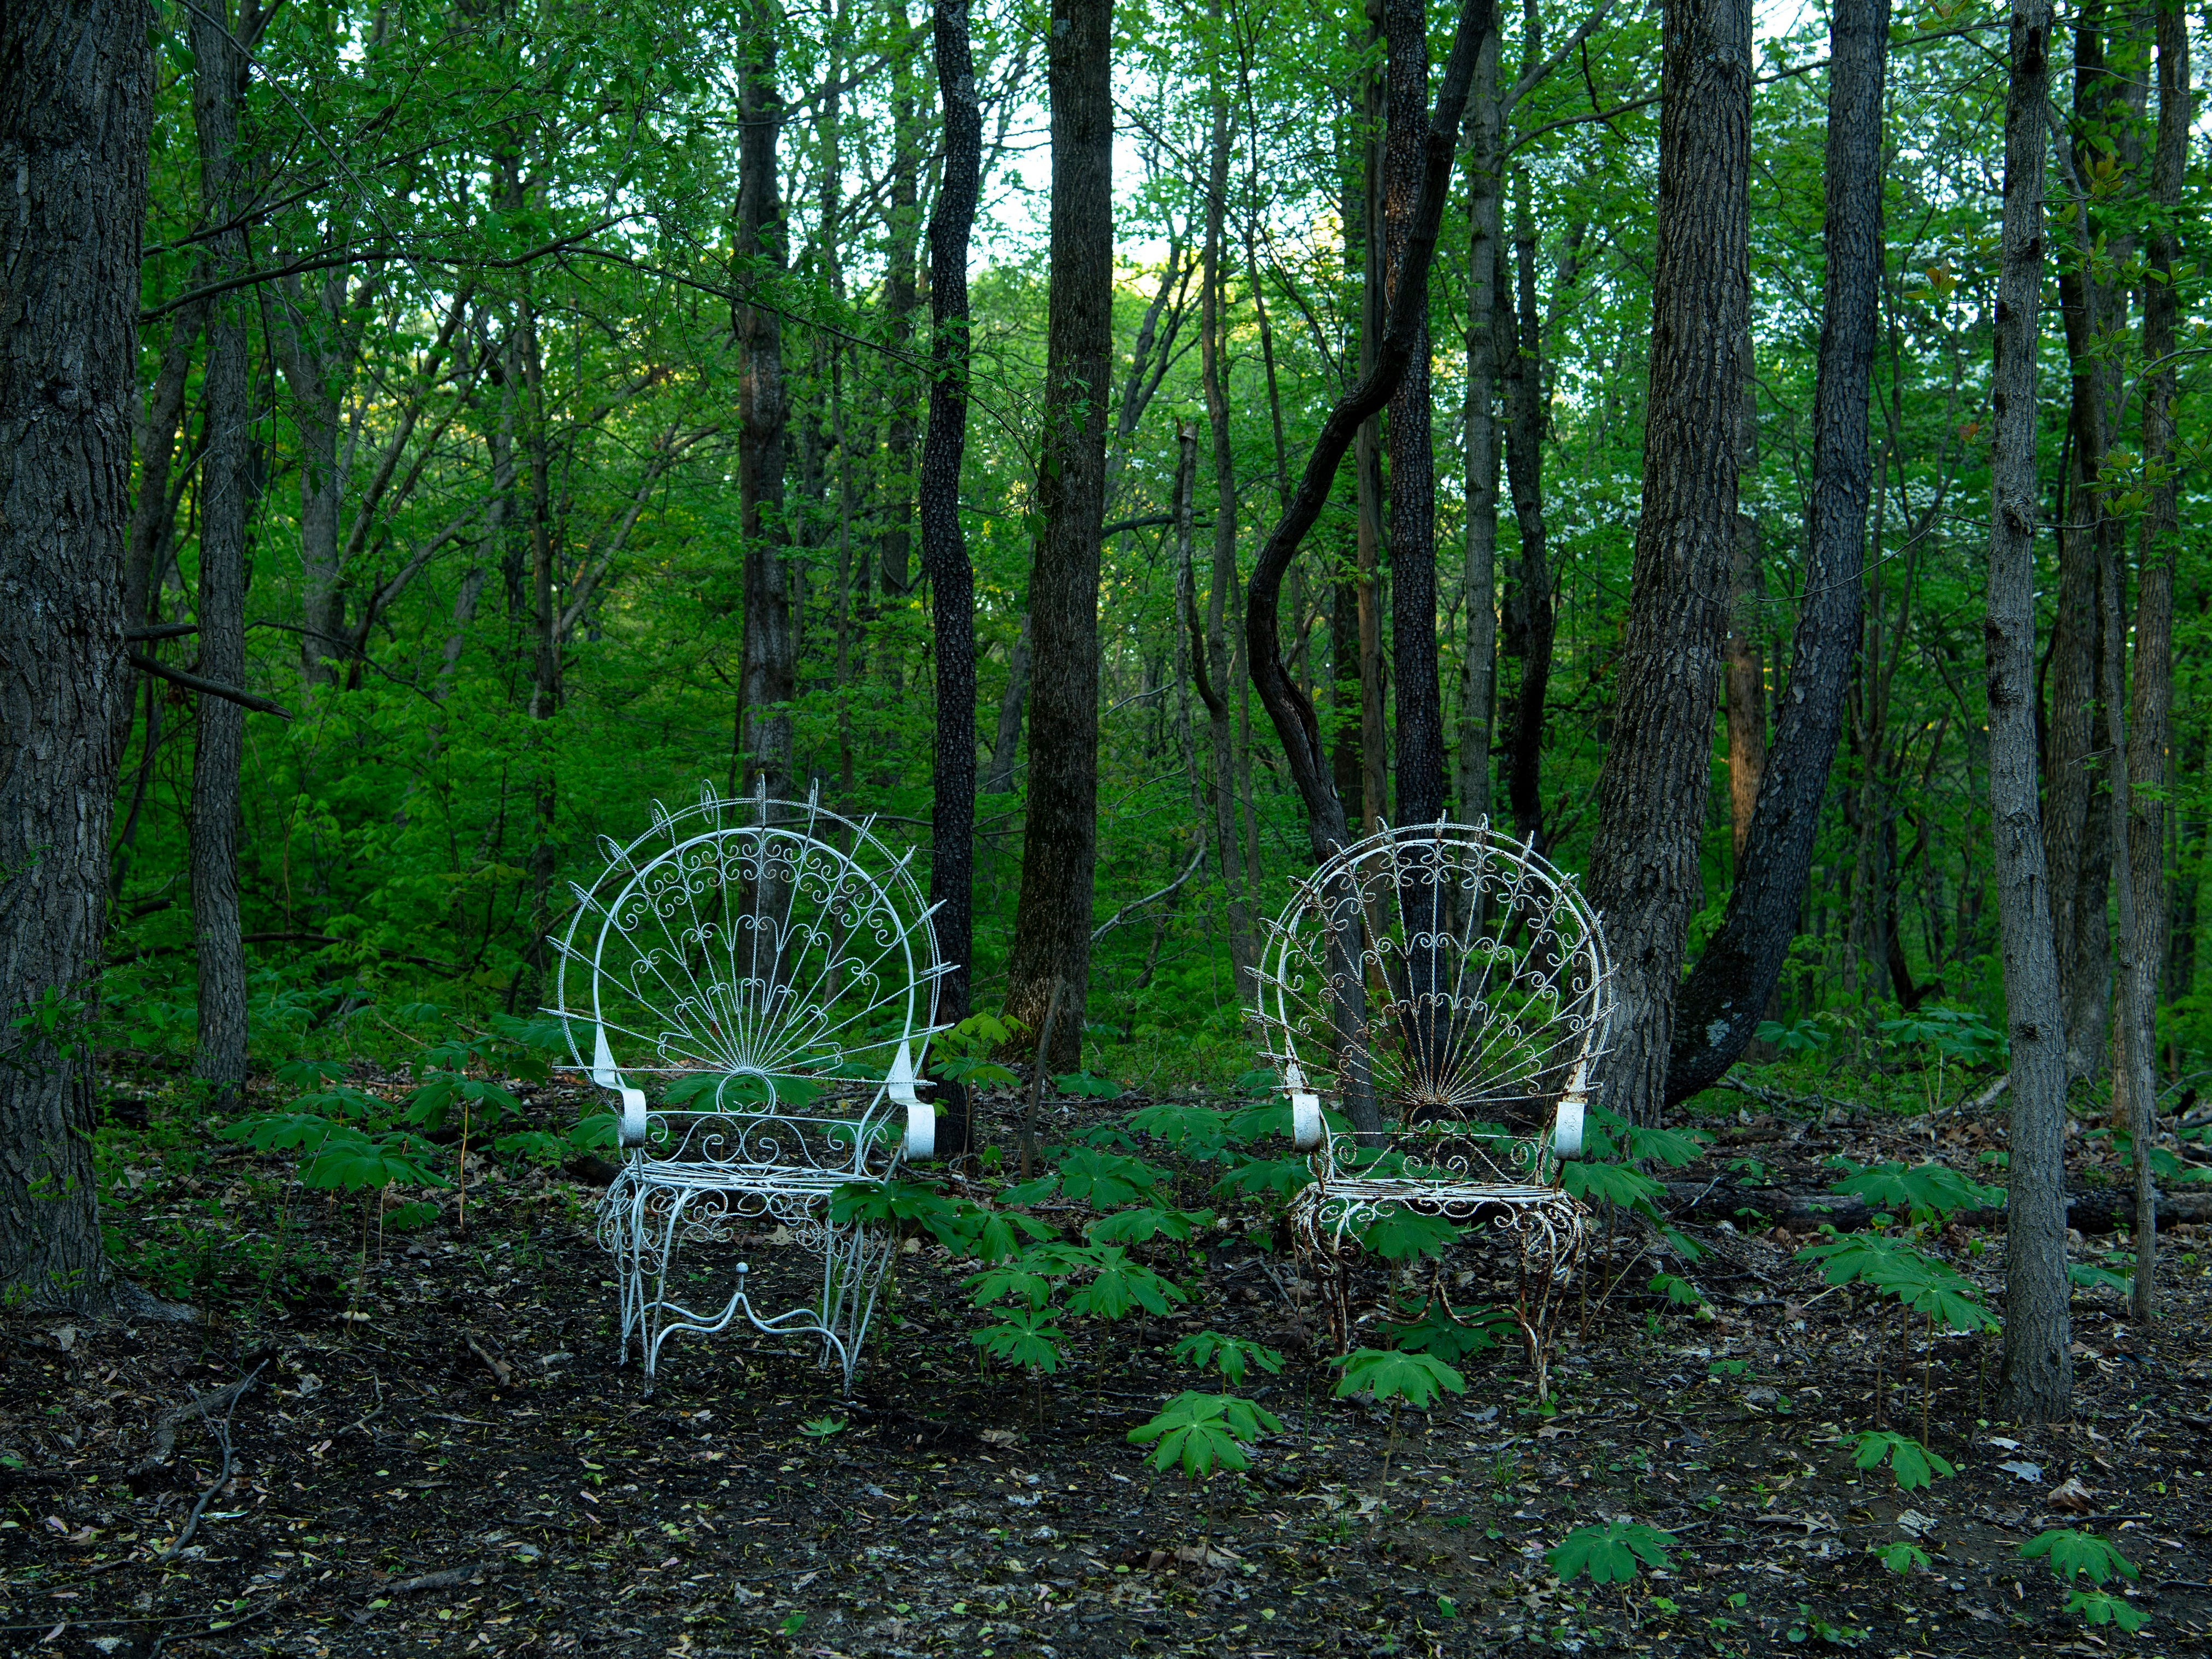 Metal chairs are part of the decor at the Azalea Path Arboretum and Botanical Gardens in Pike County, Ind., Friday, April 26, 2019. The facility was started by Beverly Knight in 1979 on 15 acres and has grown to more than 60 acres and has about 500 varieties of the flower.